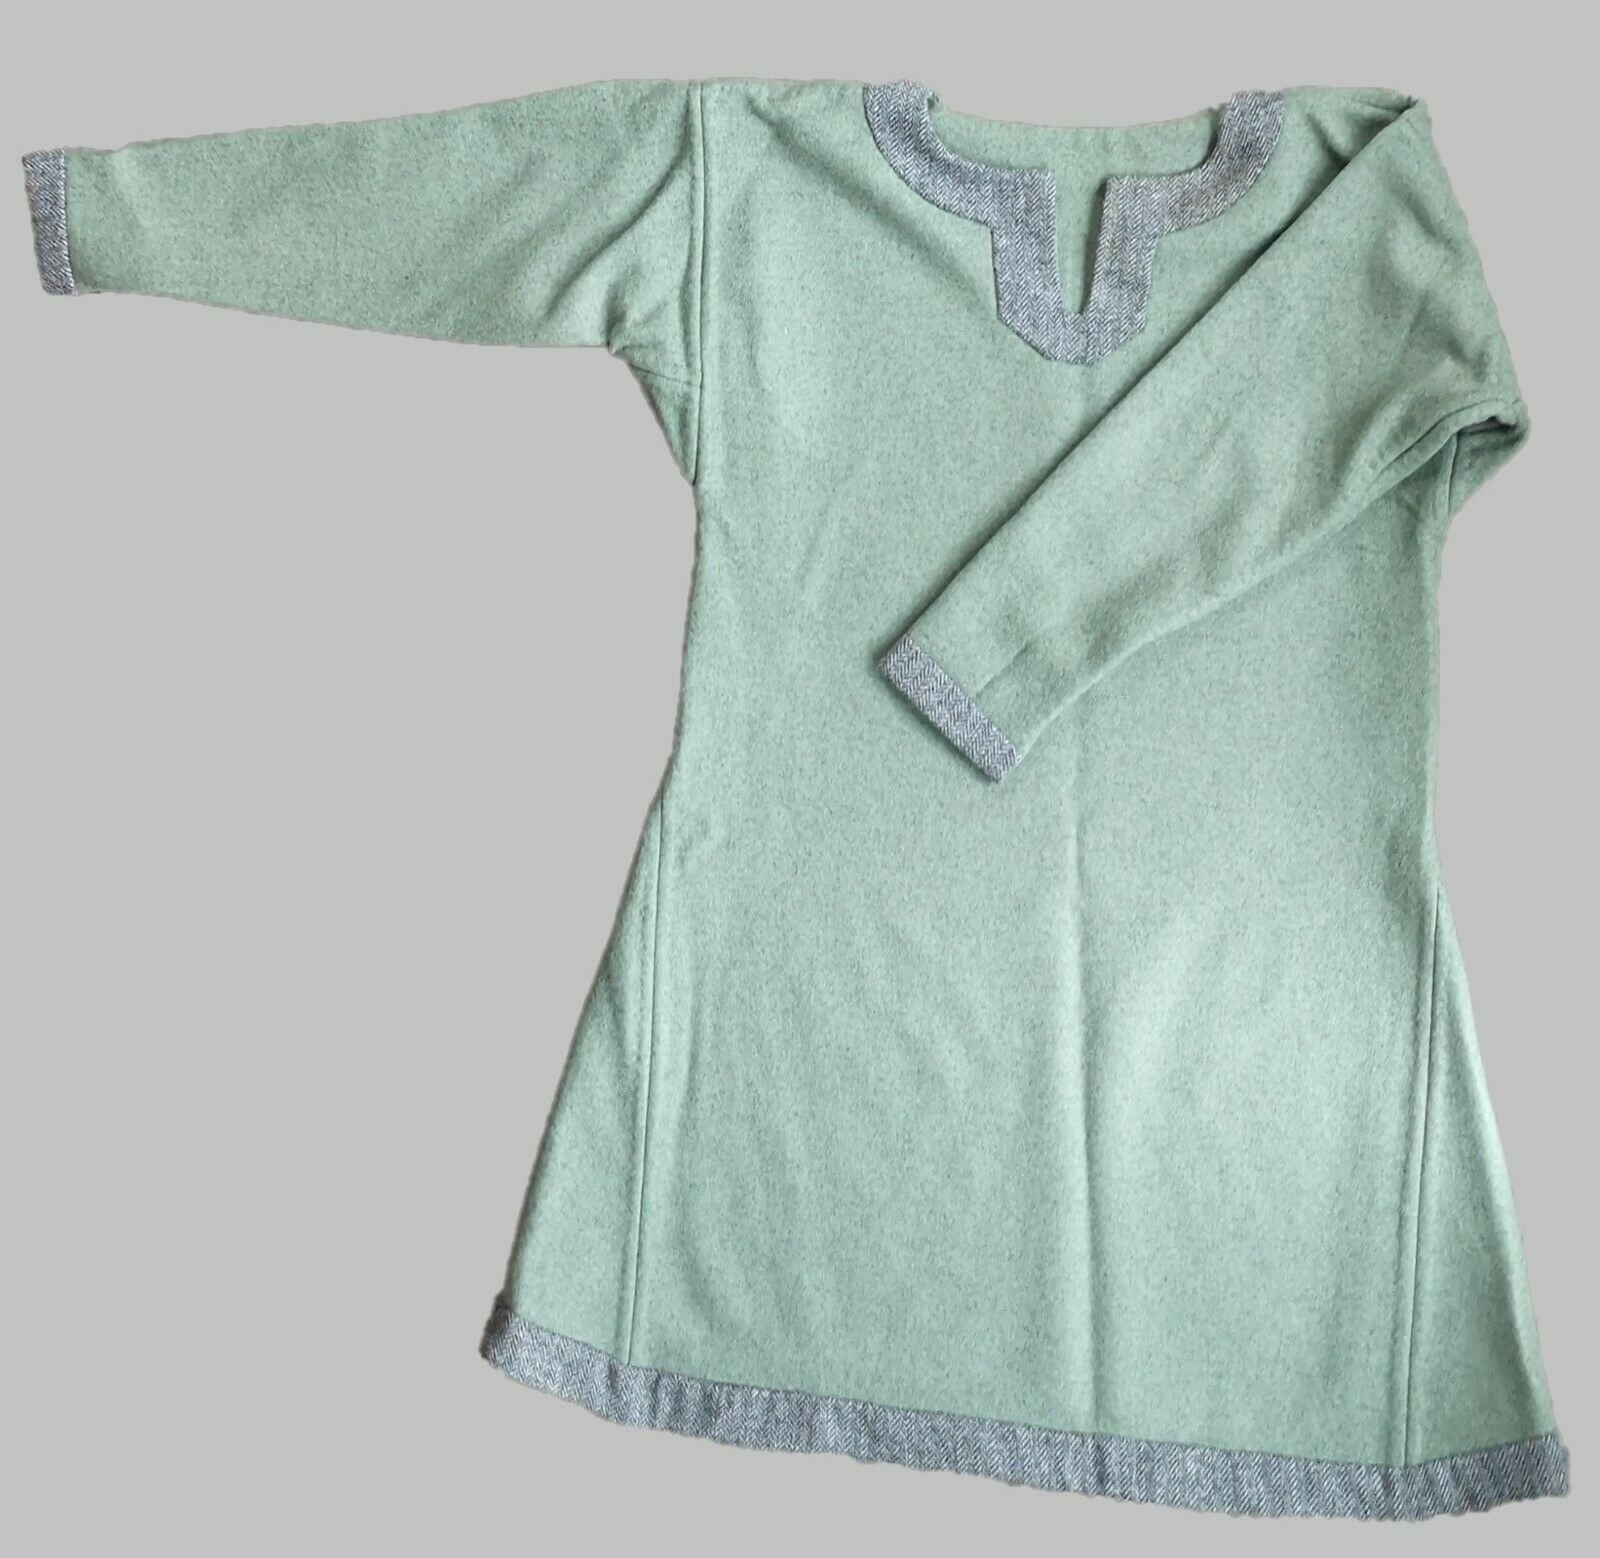 Early Medieval Tunic - Fully Hand Sewn Seams - Fits Up To 41